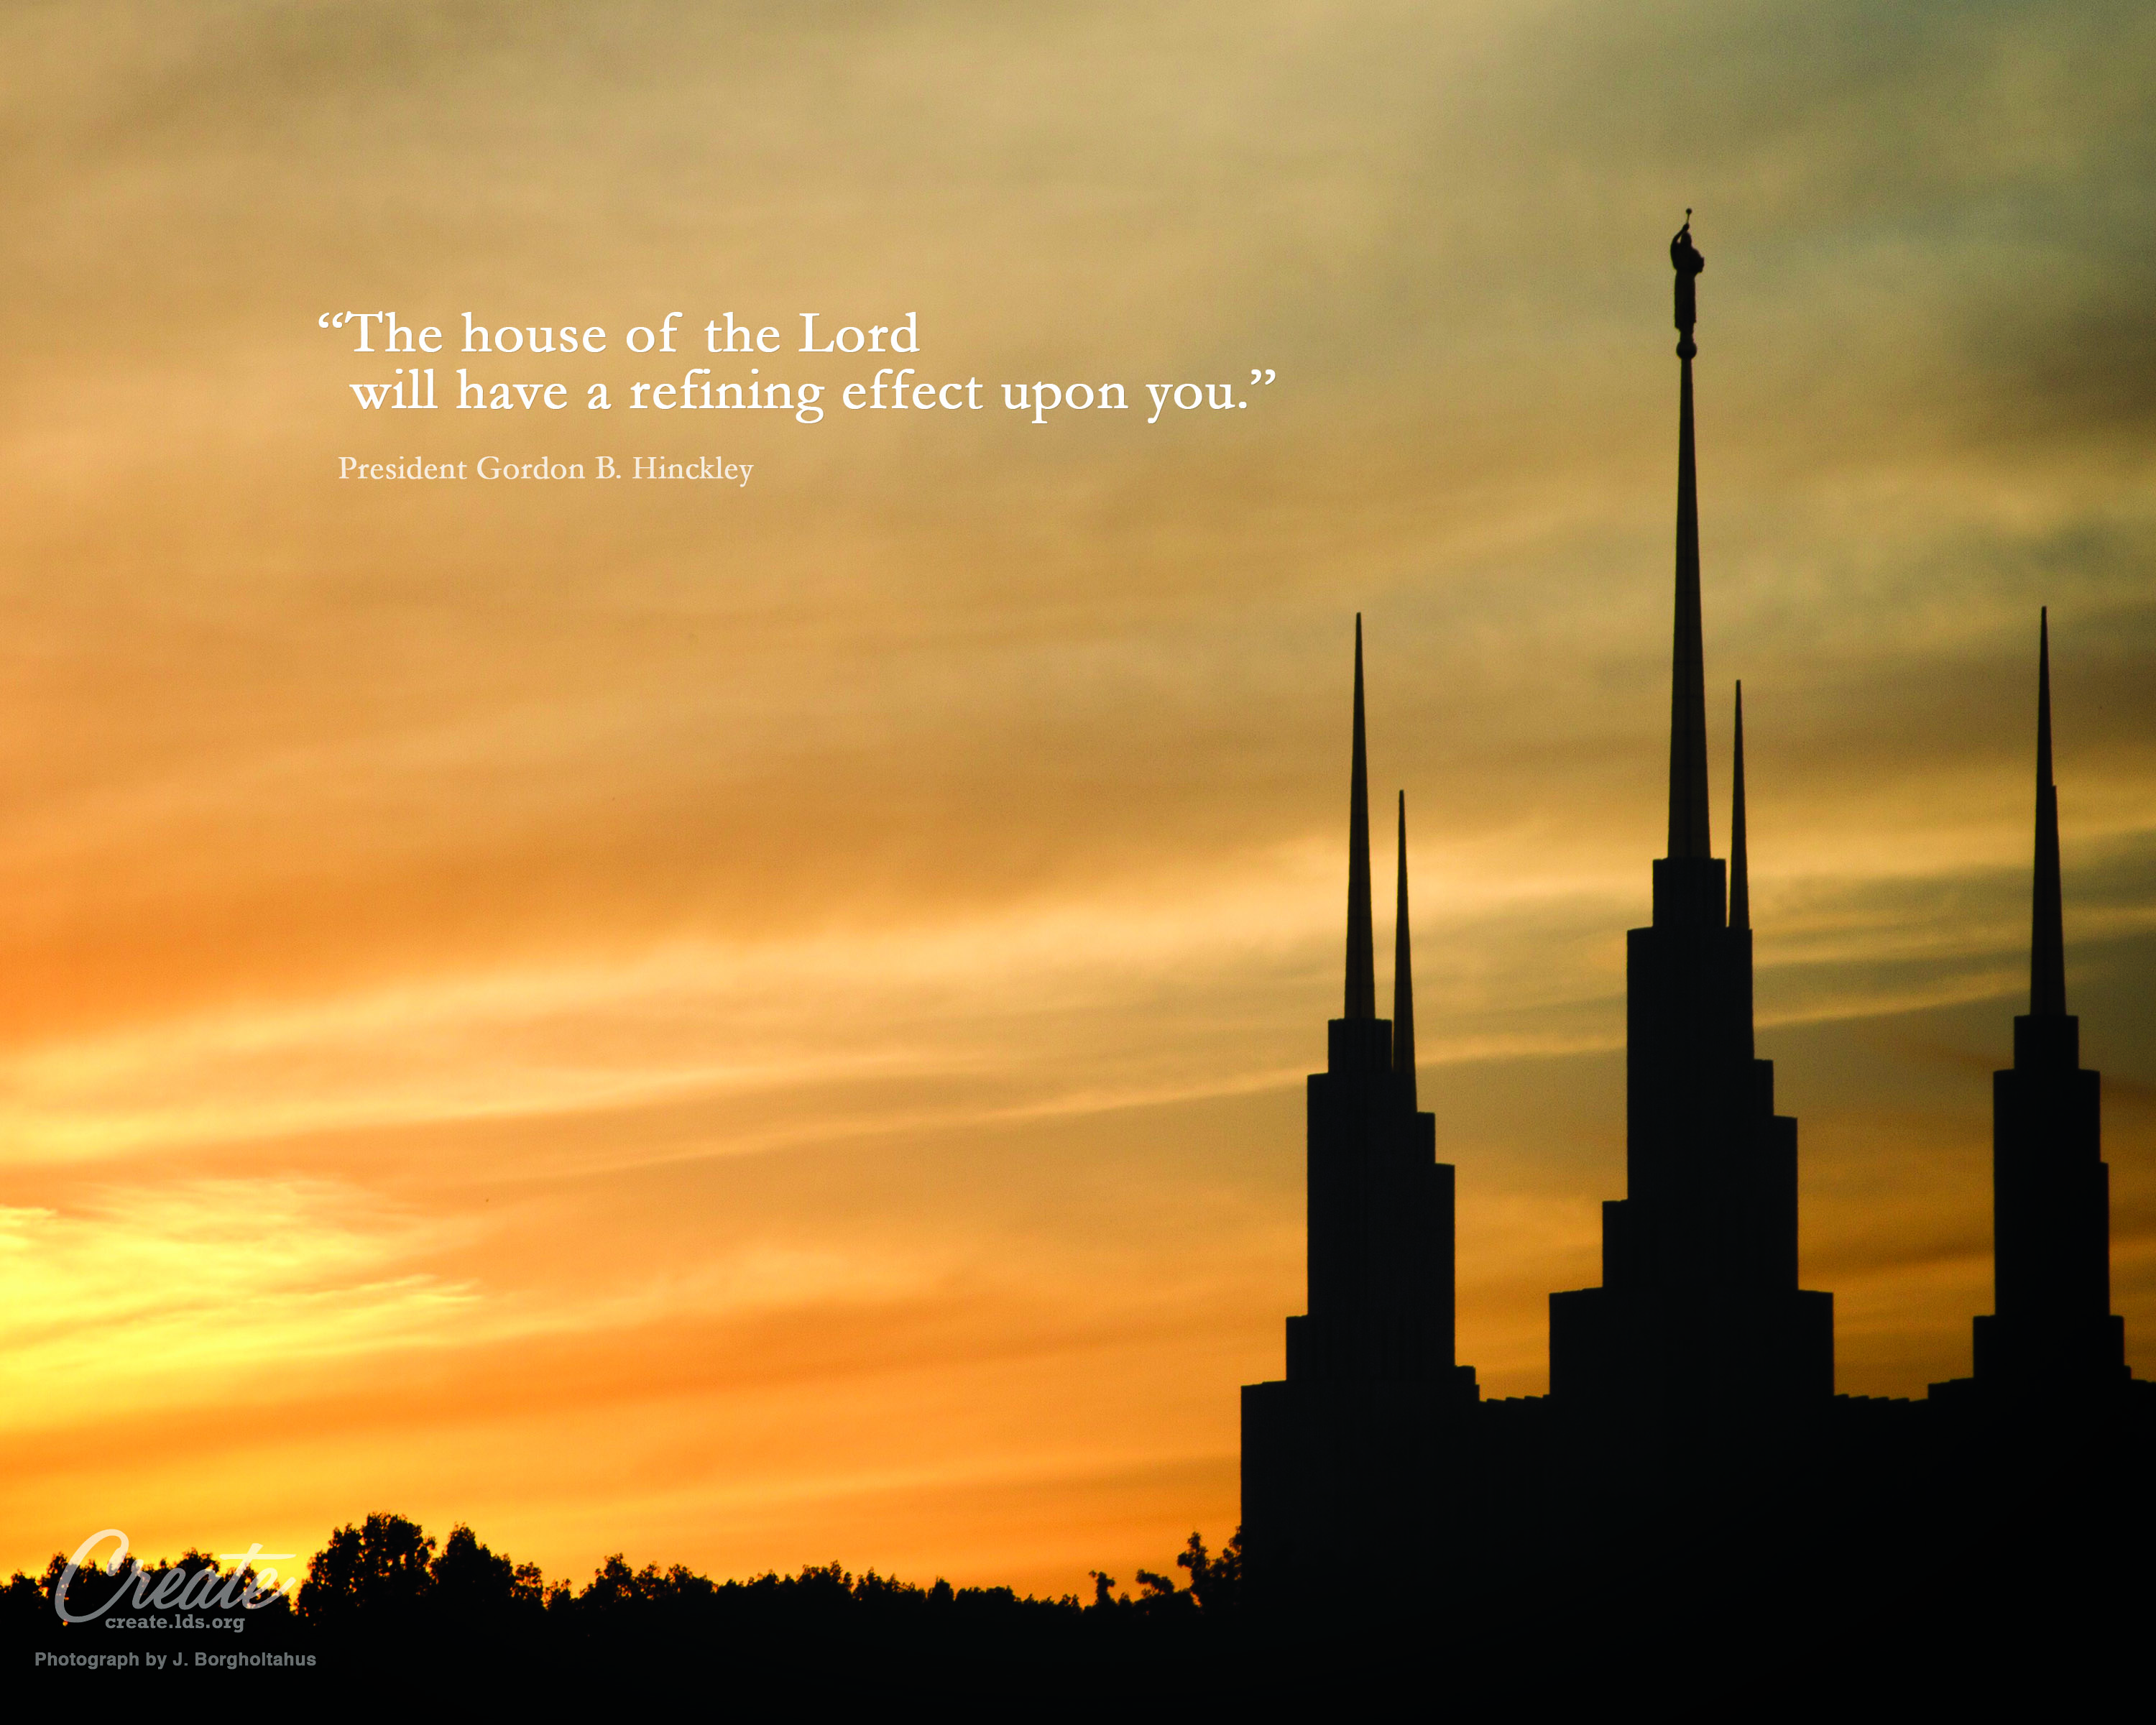 Printable posters - Lds temple wallpaper ...